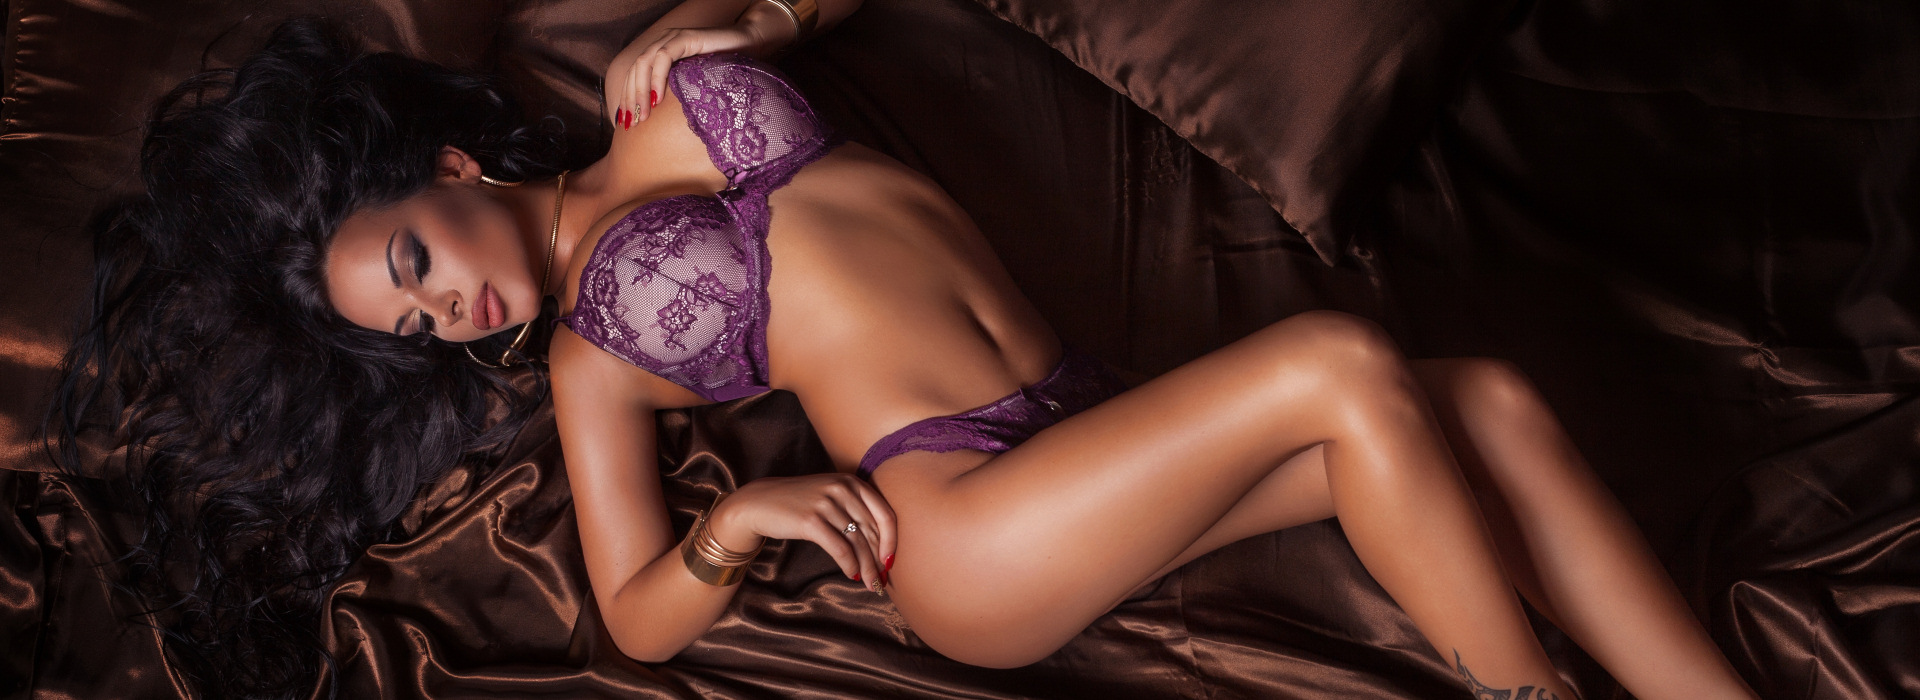 VIP Girl Publicity in London for High Class Escorts